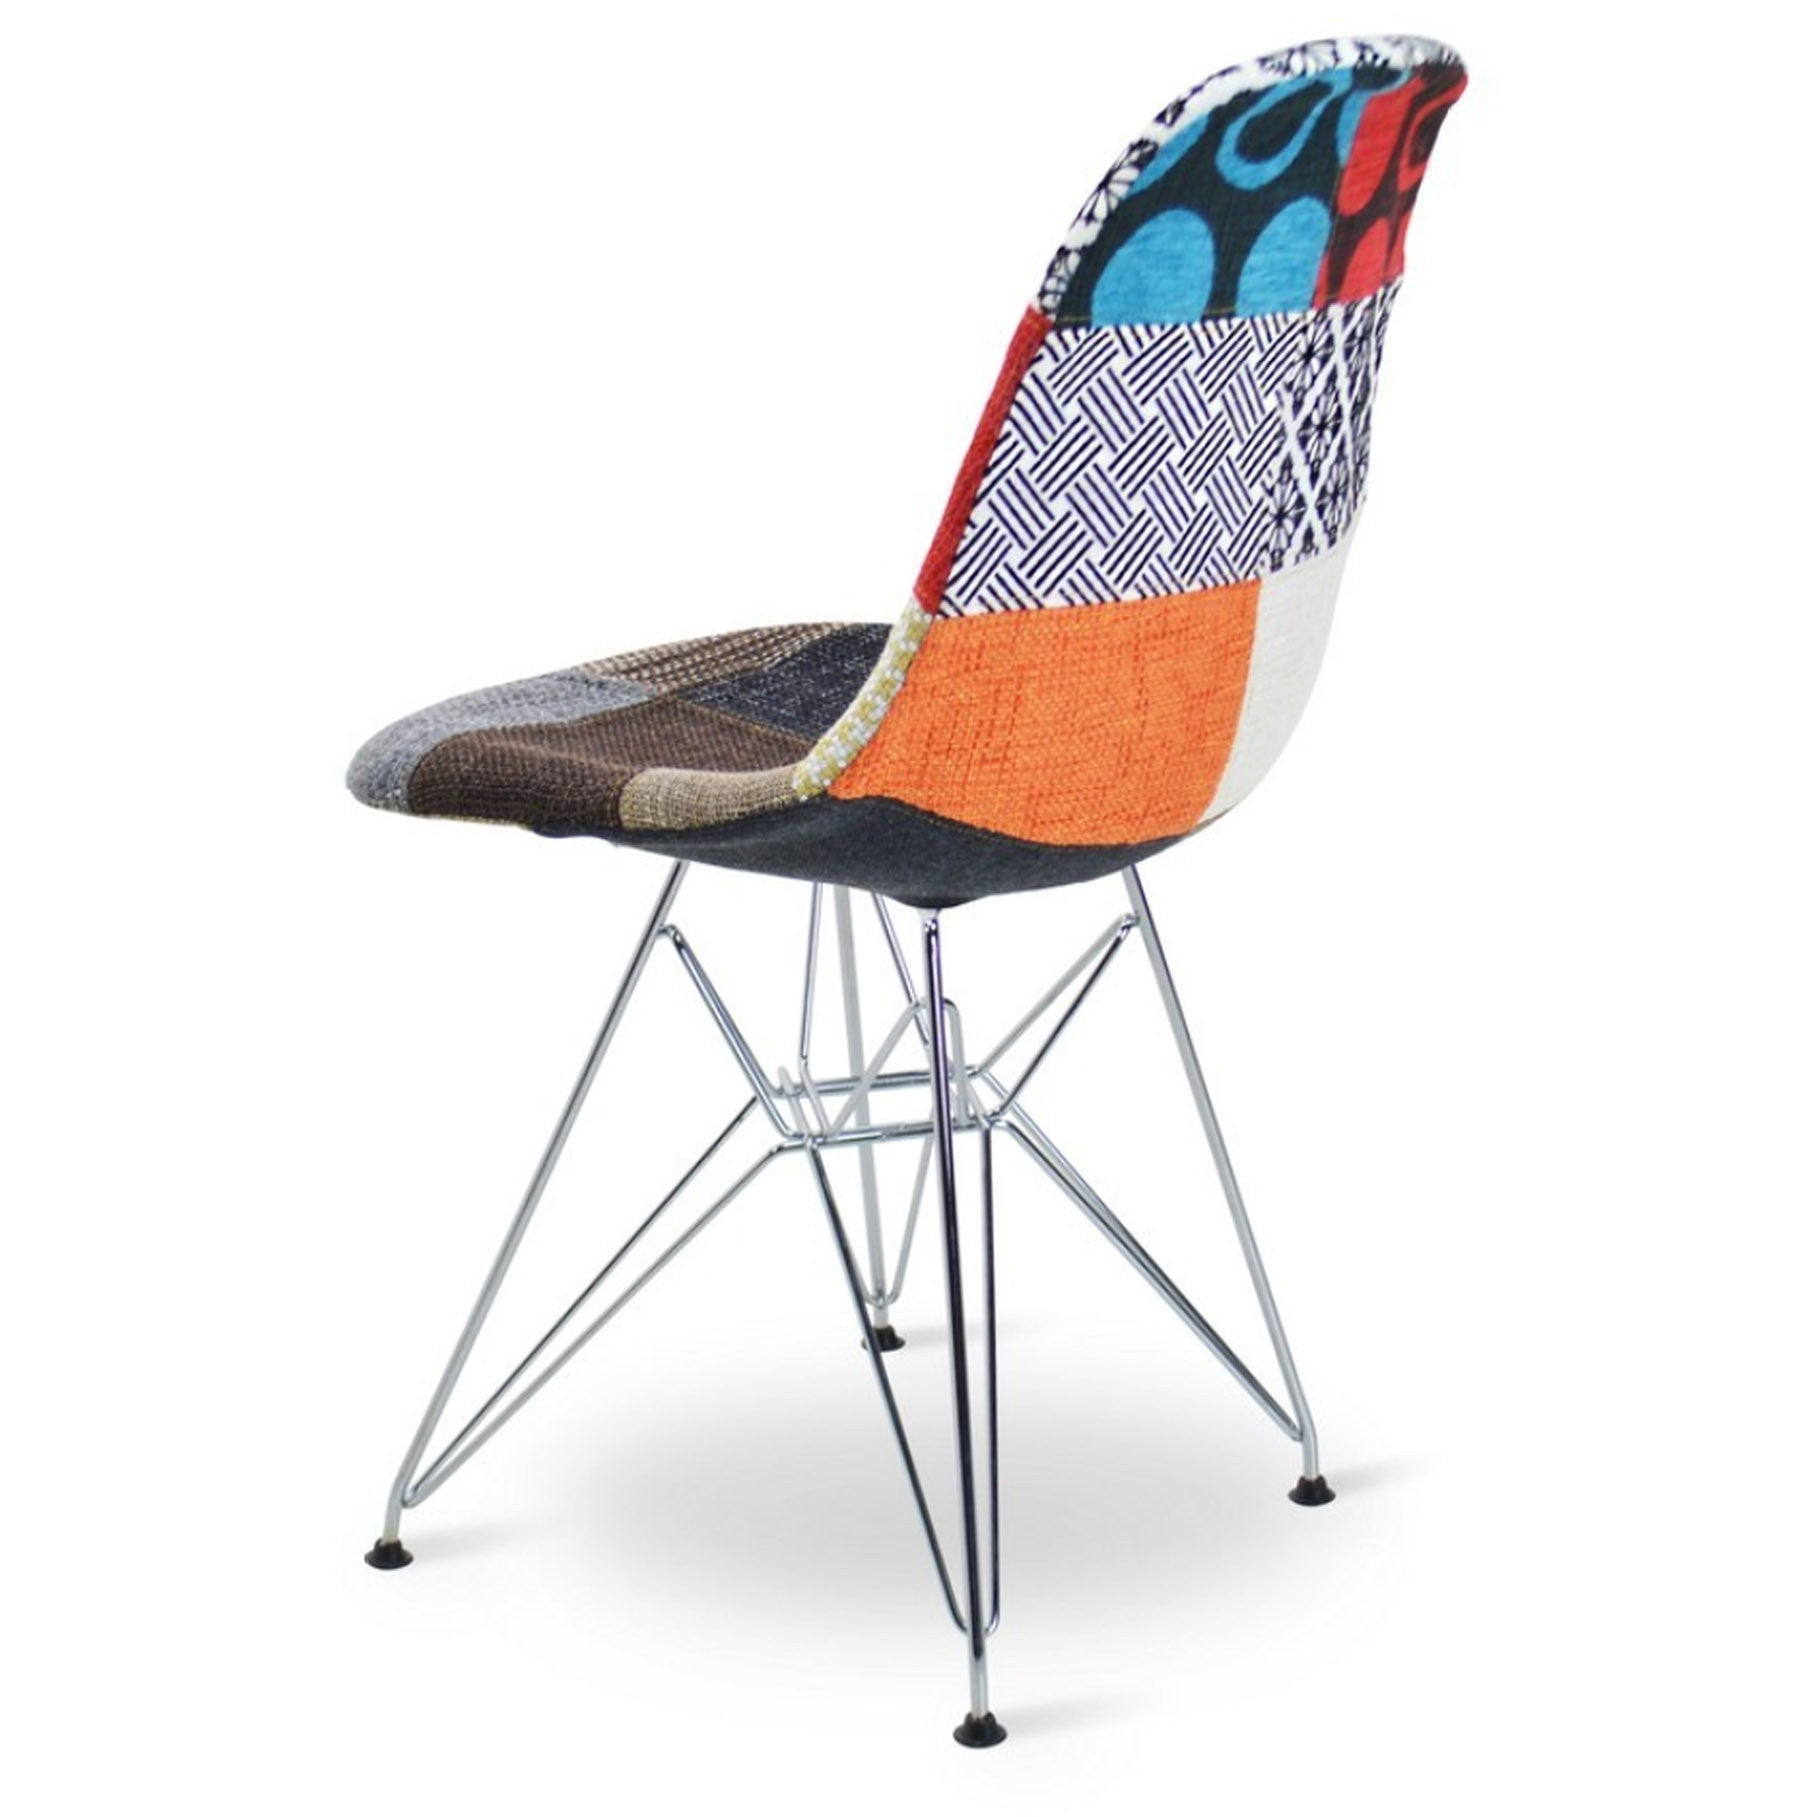 Dining Chair -Fabric- MS0029NOFNM - ebarza